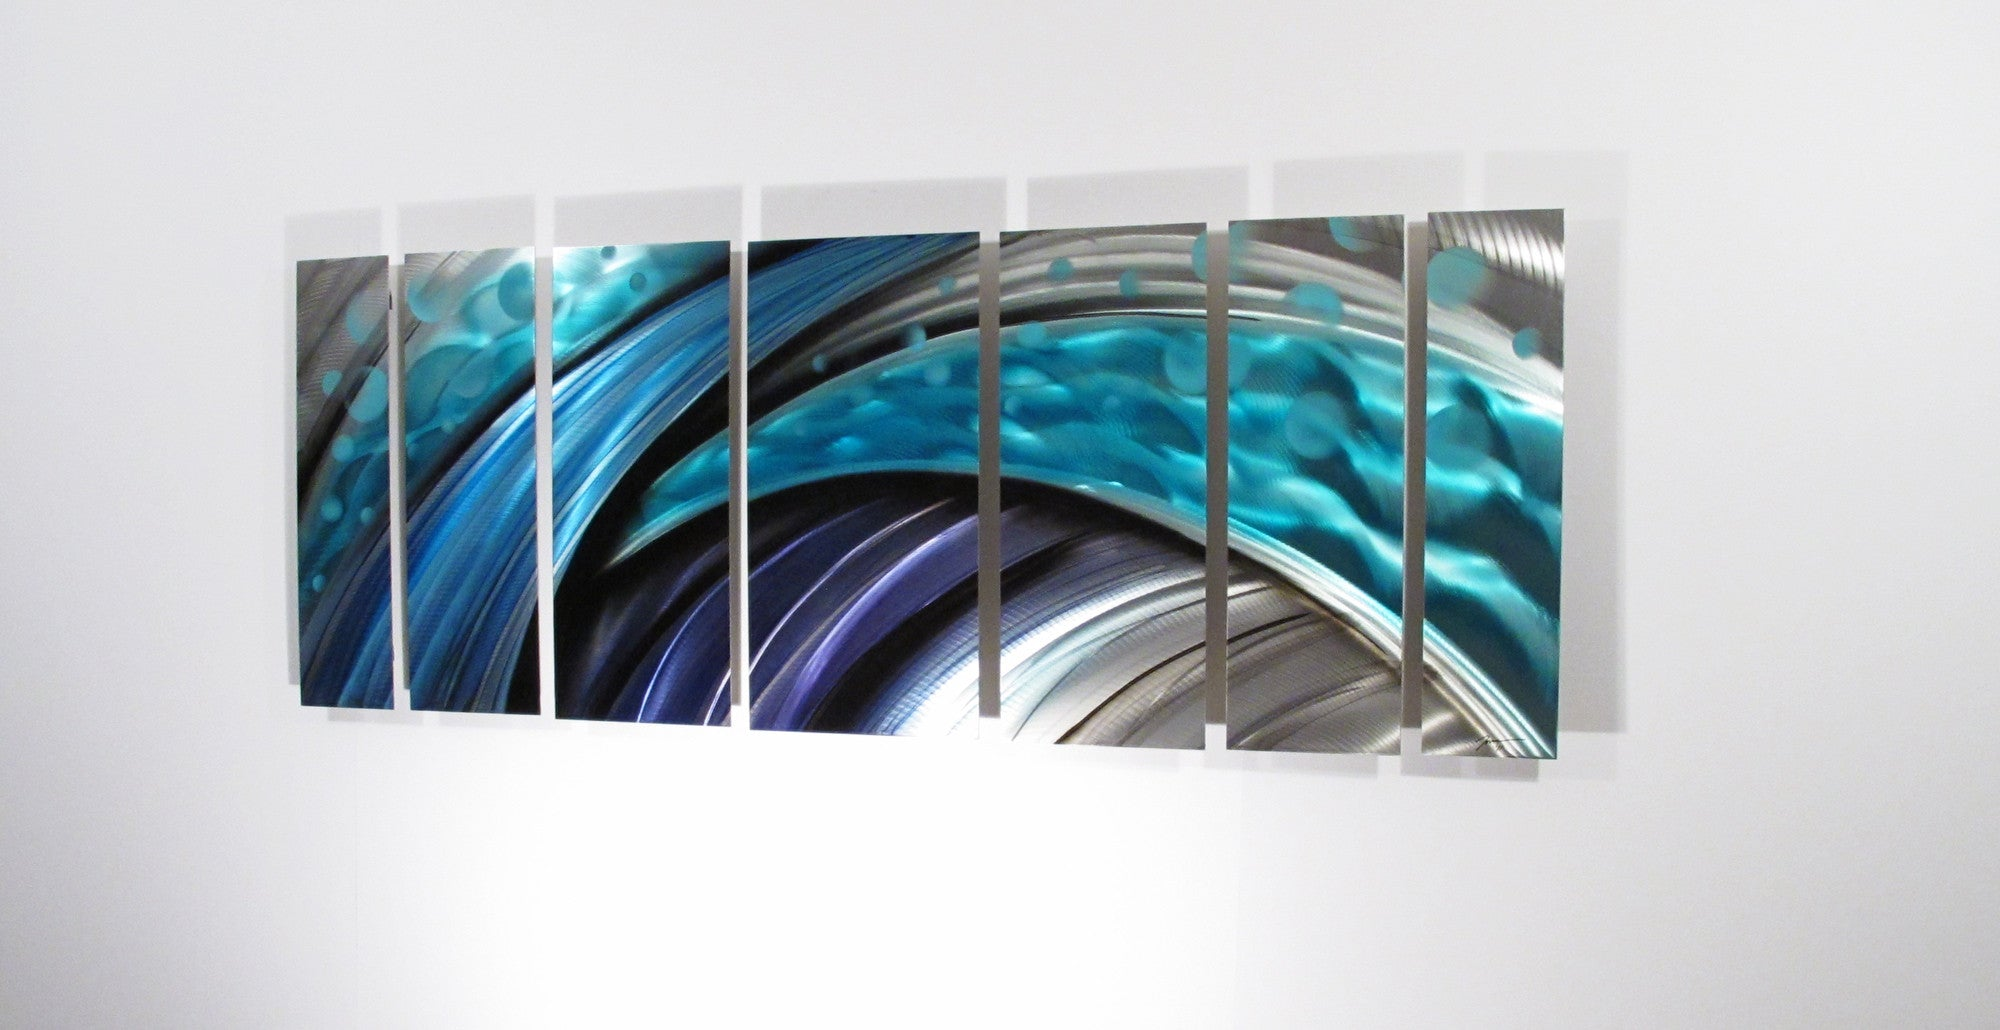 "Blue Metal Wall Art Fascinating Typhoon"" Large Modern Abstract Metal Wall Art Sculpture Blue  Dv8 Review"